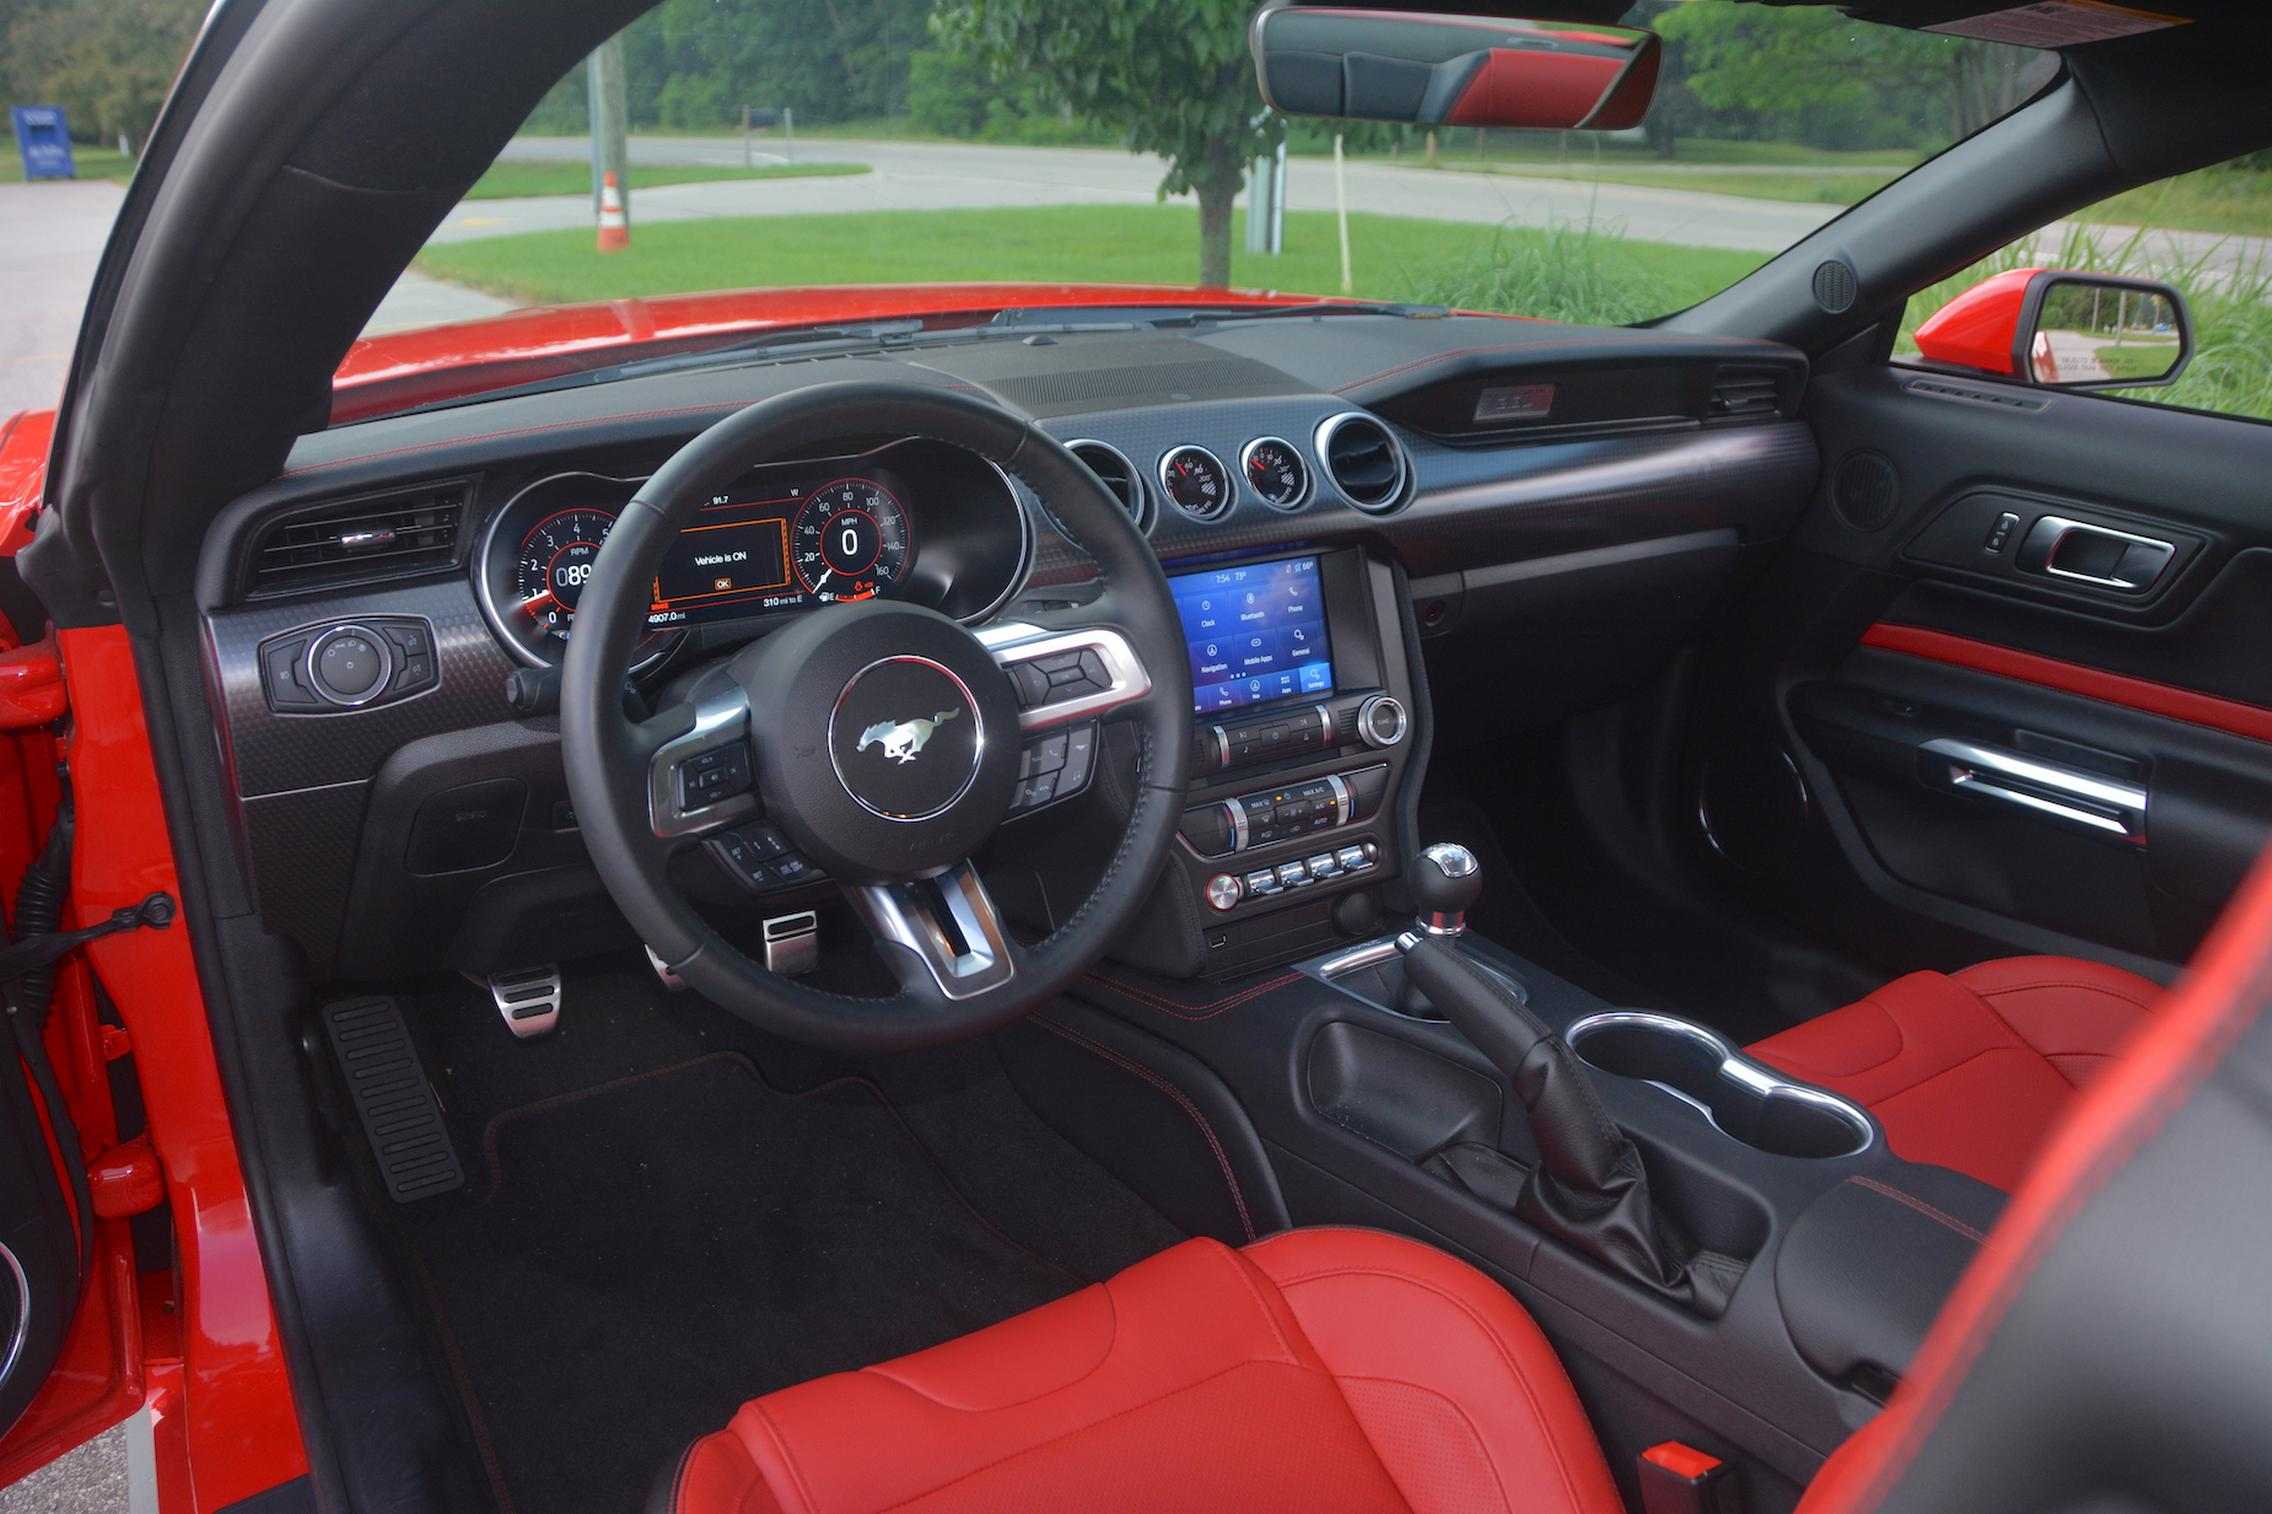 2021 Ford Mustang EcoBoost interior